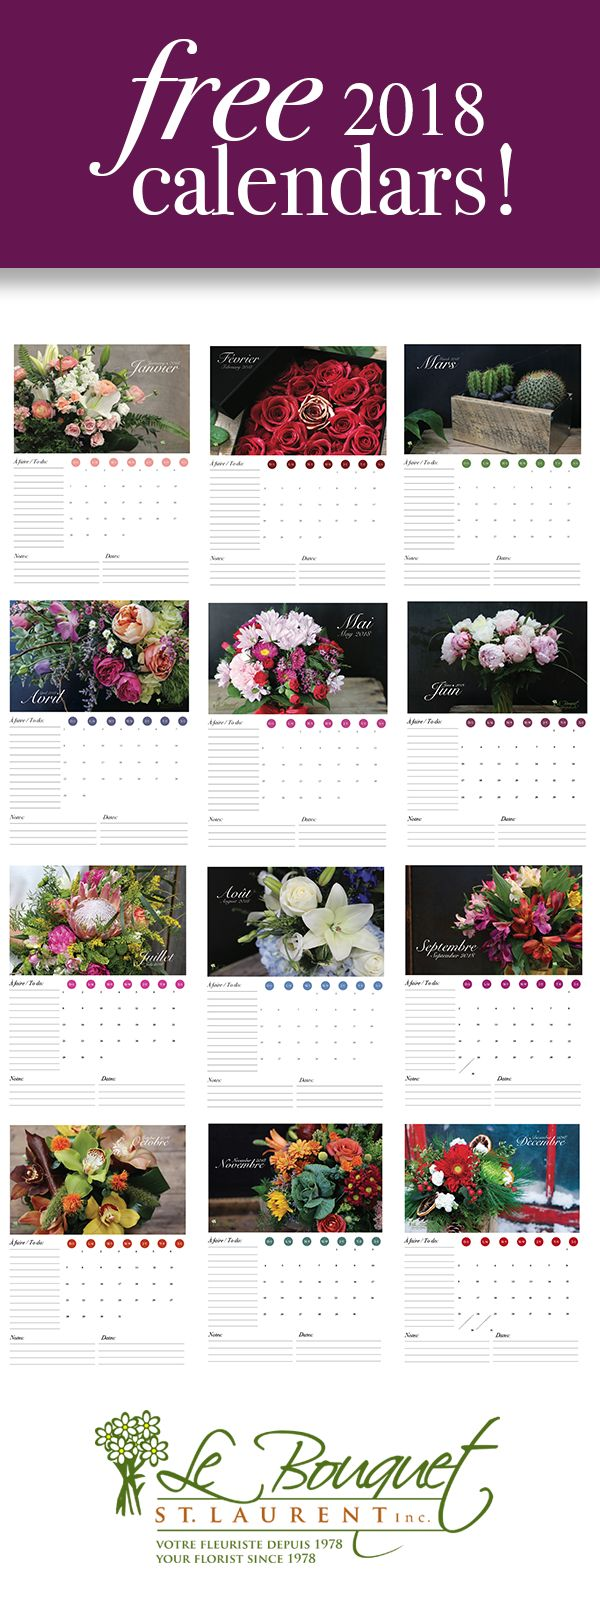 Free downloadable calendars in two styles!  Featuring flowers from Montreal florist Le Bouquet St Laurent.  Get your free downloads now!